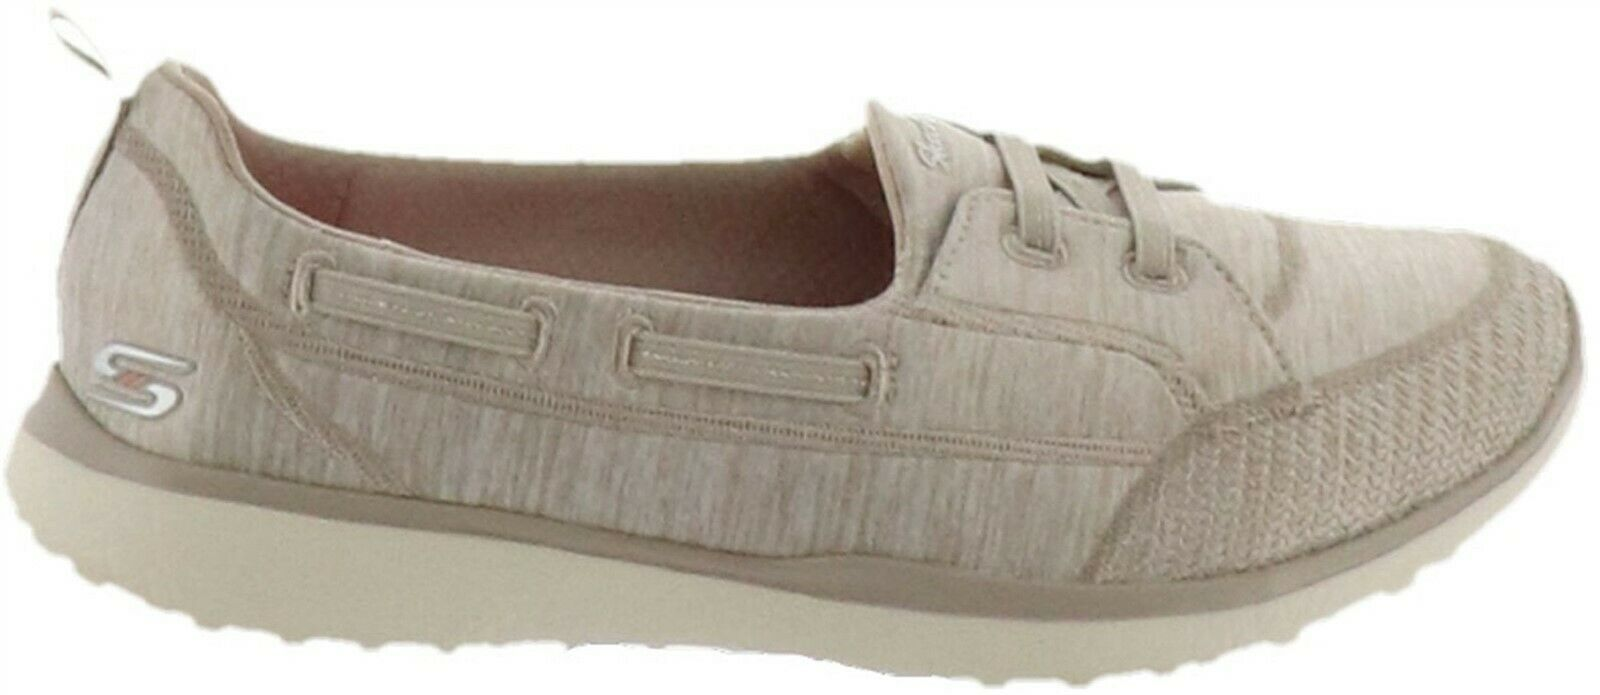 Primary image for Skechers Microburst Bungee Slip-On Shoes-Topnotch Taupe 7M NEW A302829